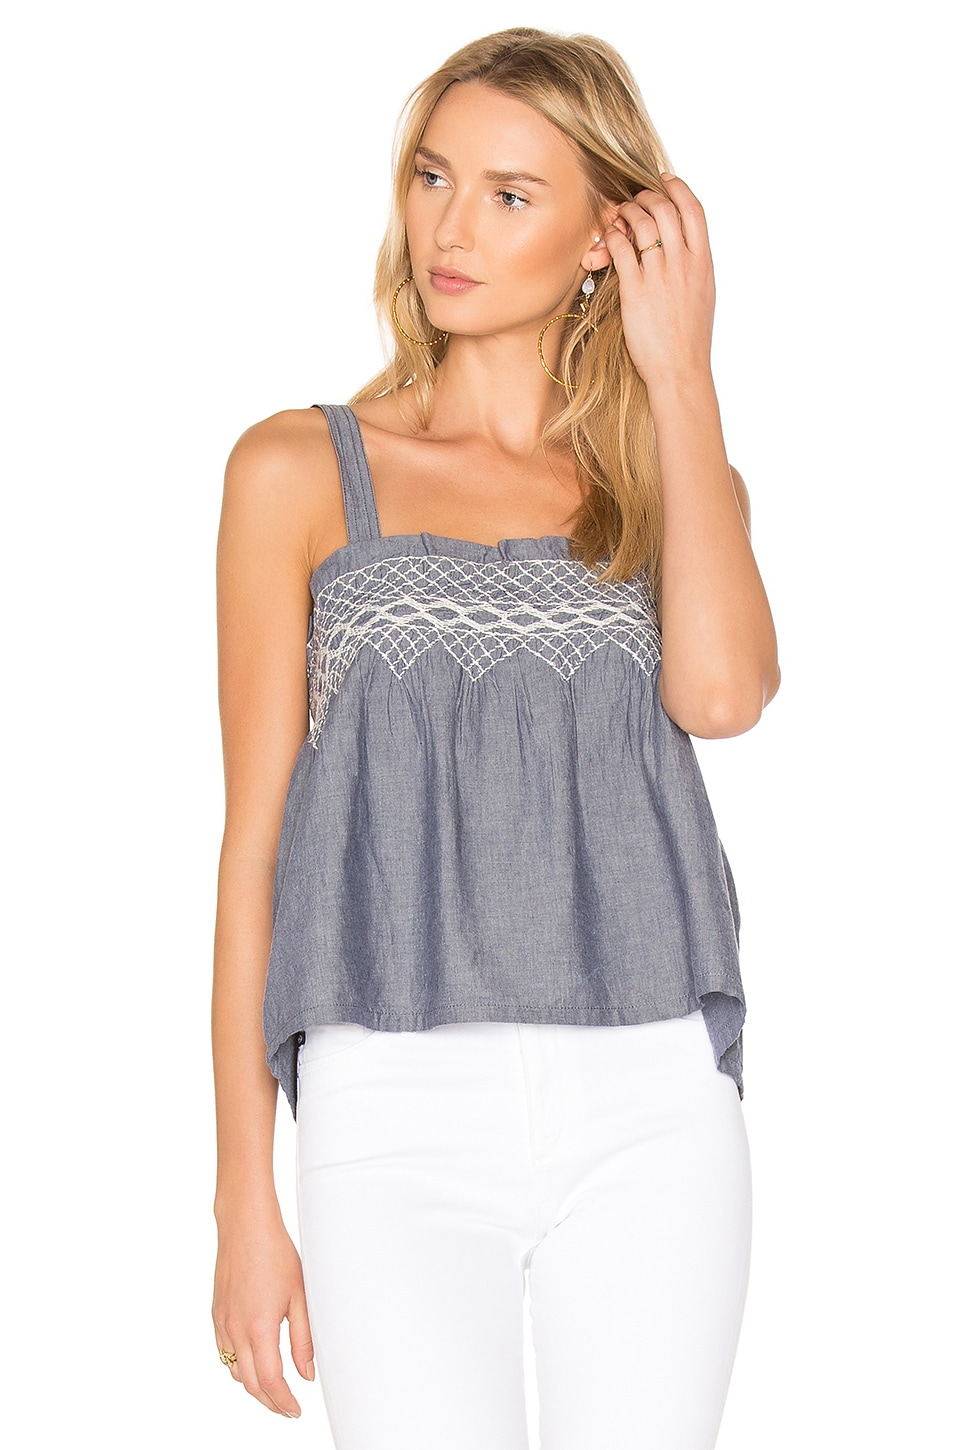 The Smocked Tank by Current/Elliott